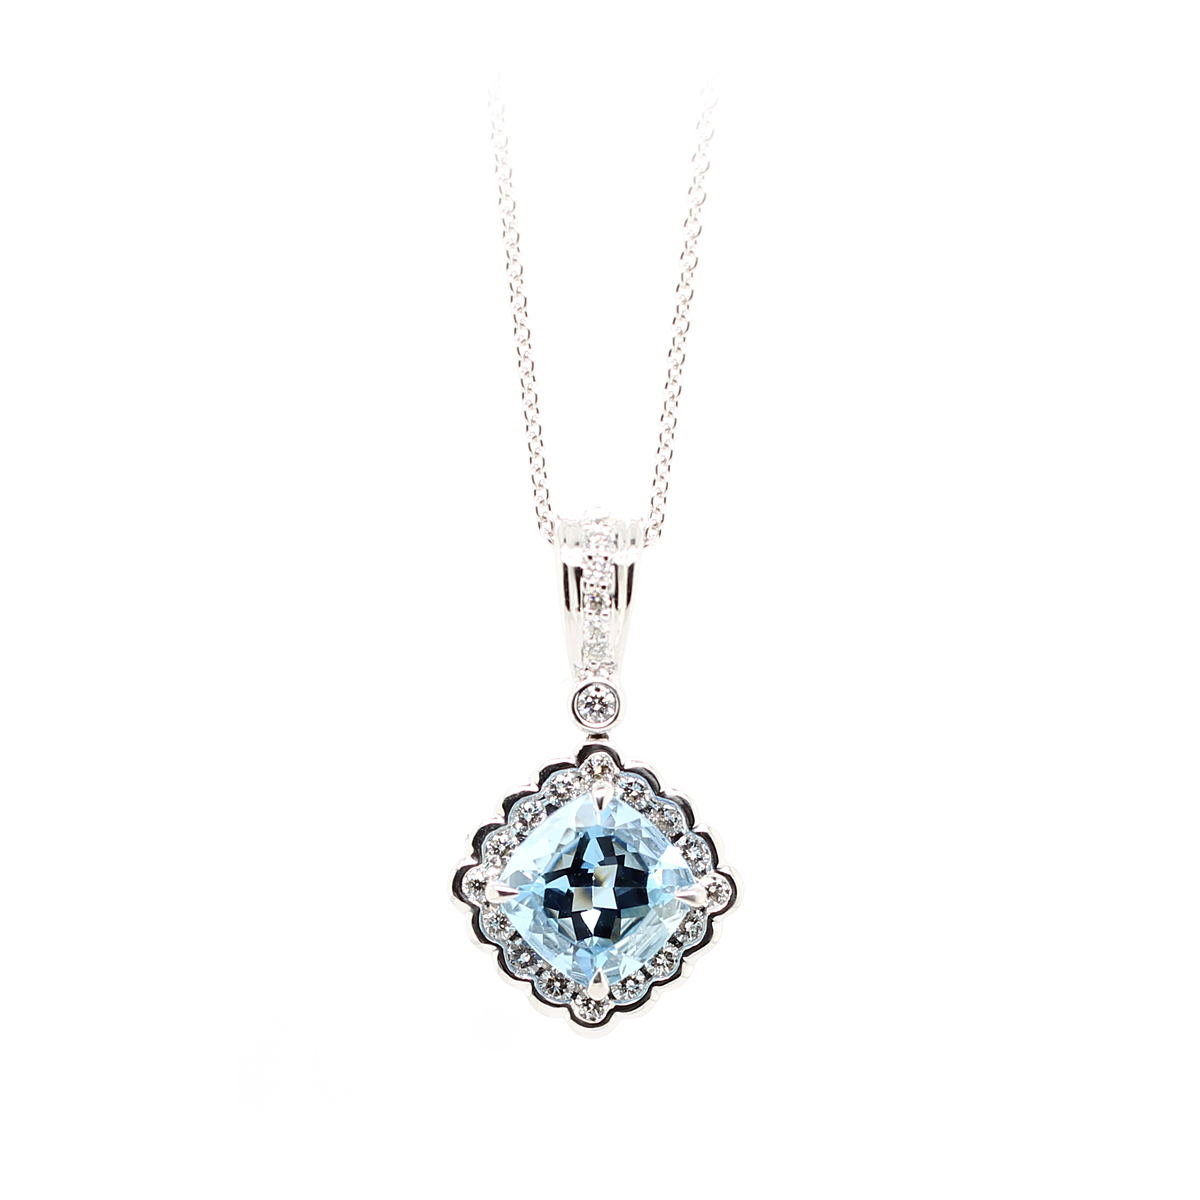 Charles Krypell 18 Karat White Gold Aquamarine and Diamond Pendant Necklace